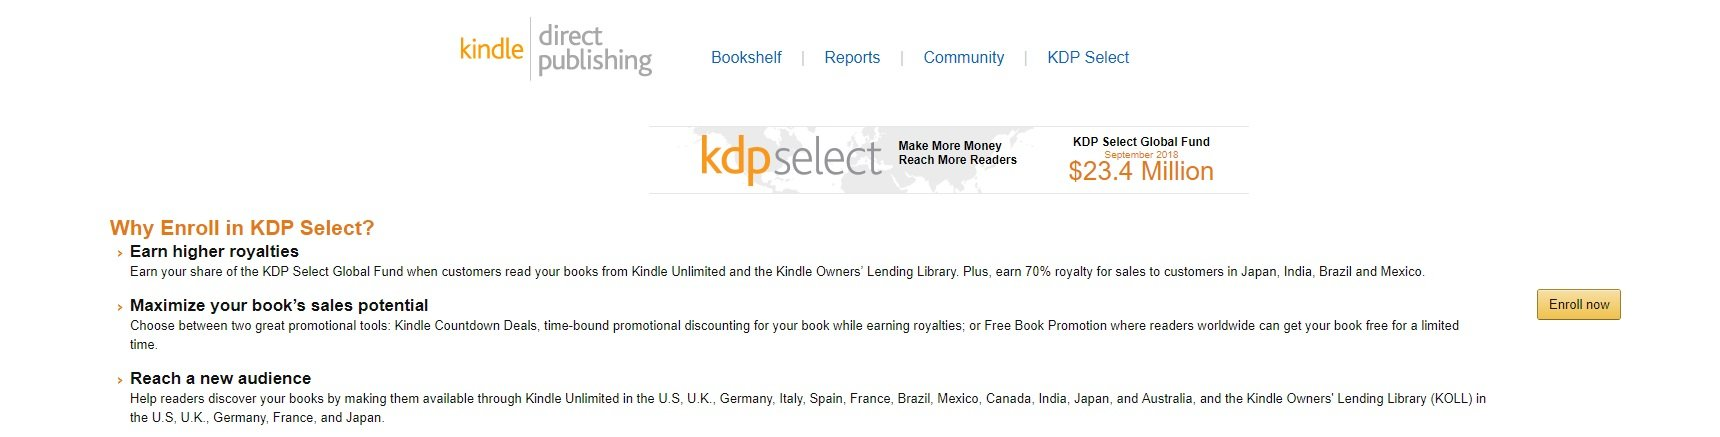 How to set up the perfect Kindle ebook launch campaign using